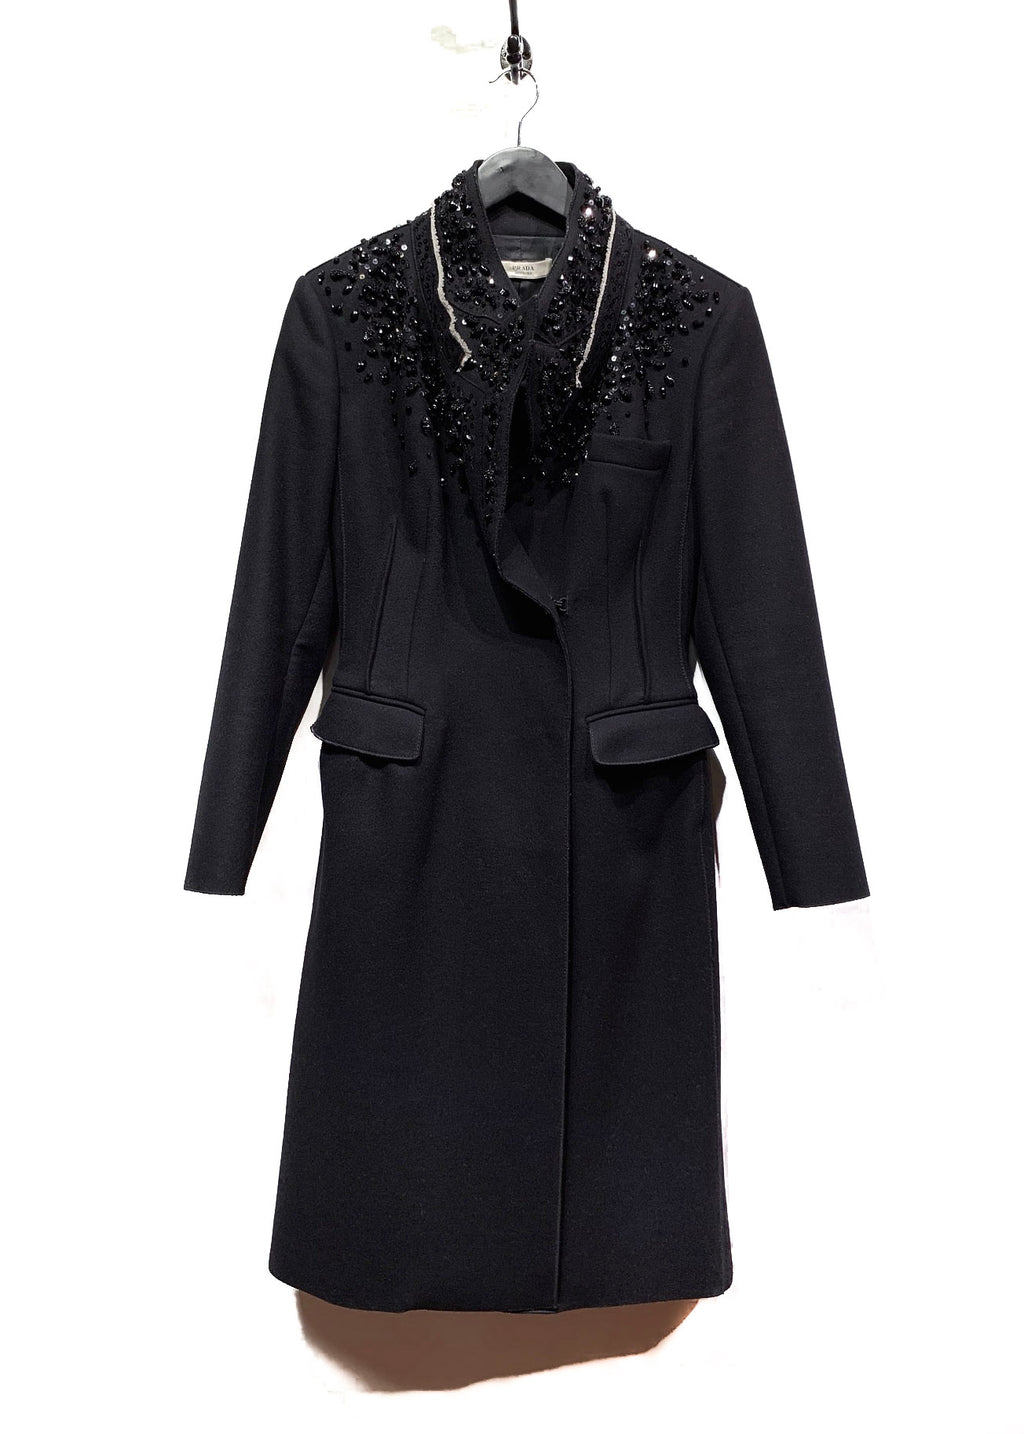 Prada Black Embellished Sequined Wool Coat